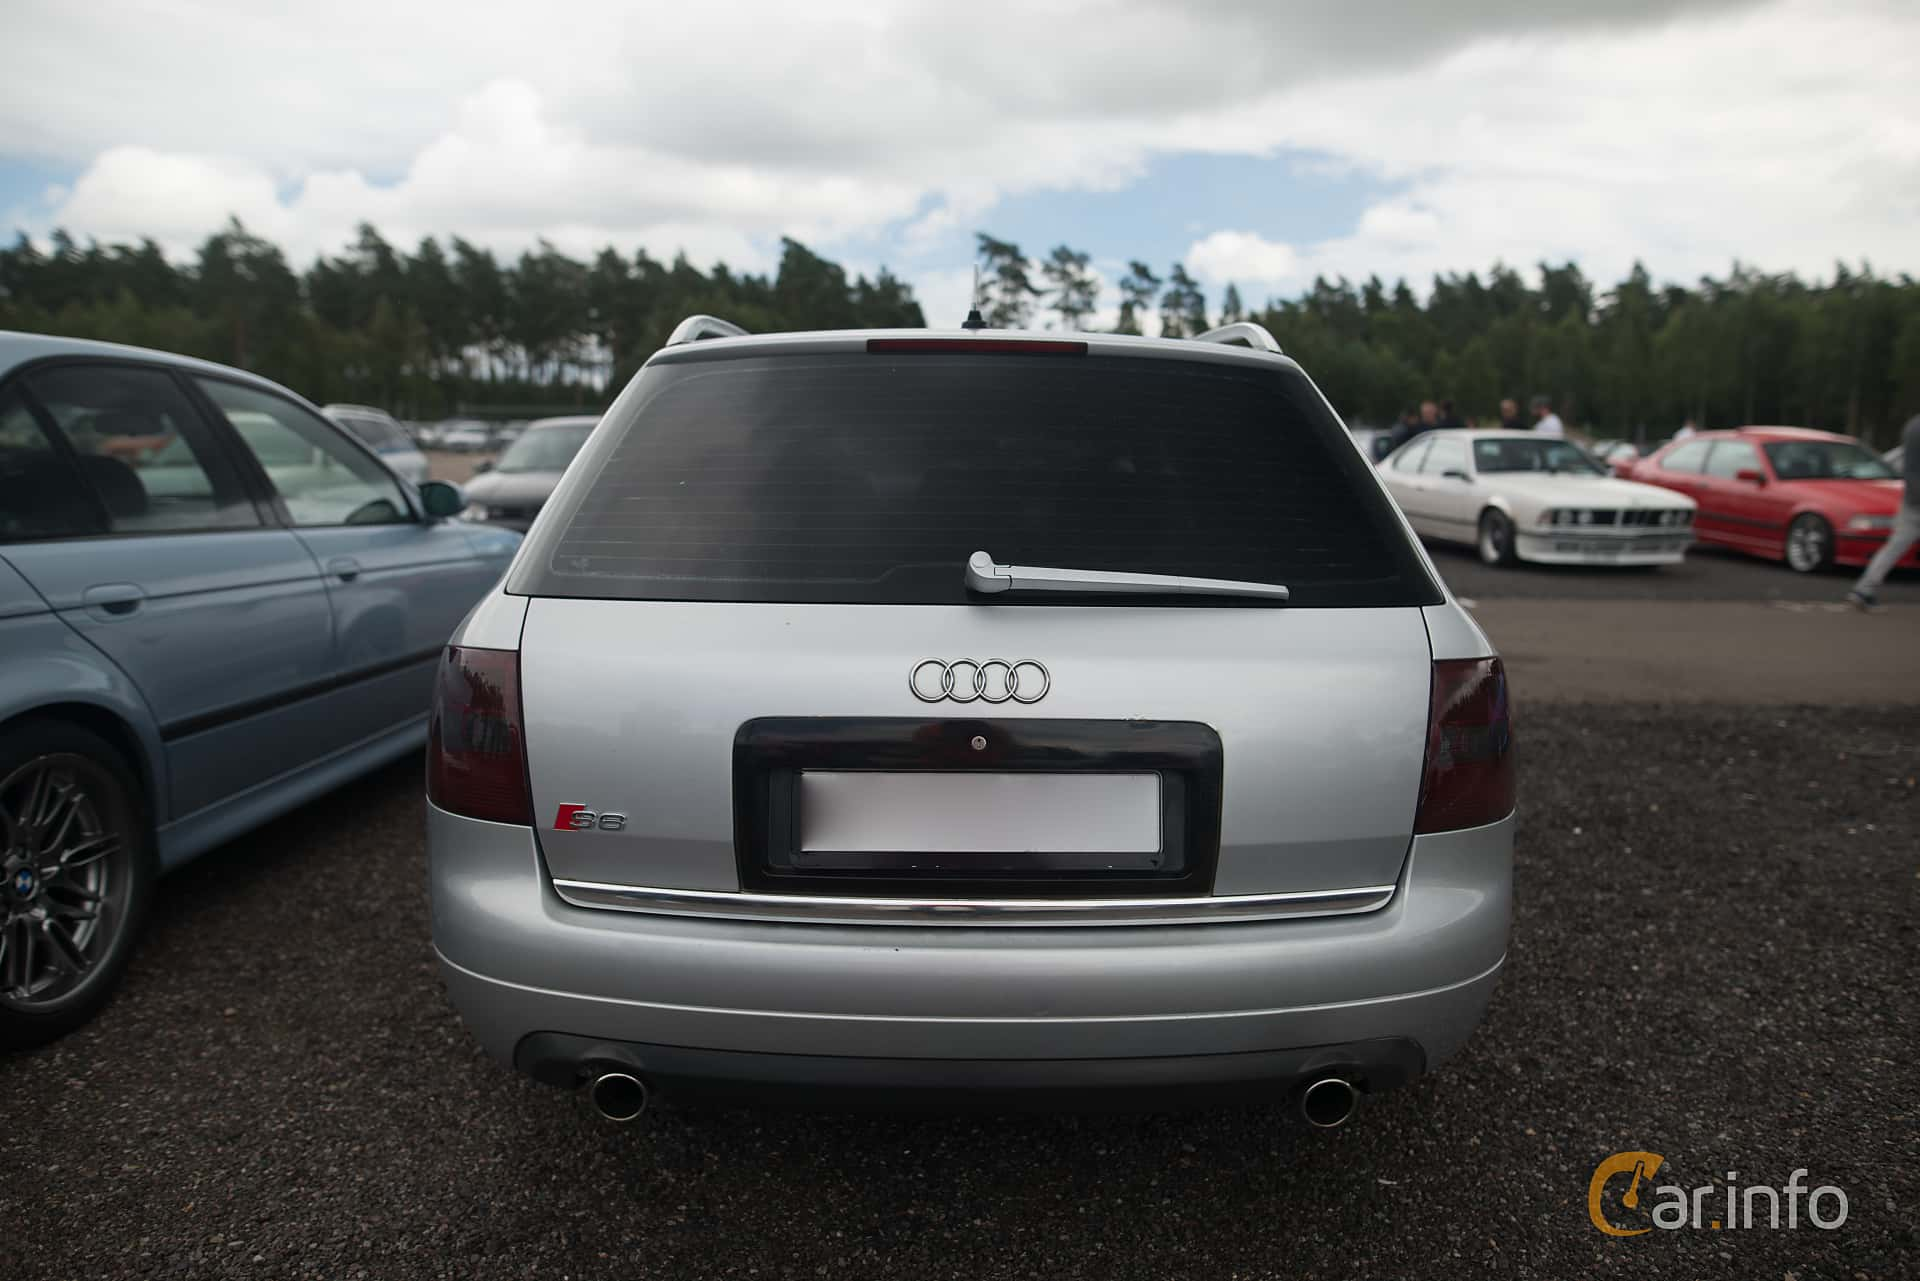 User images of Audi A6 C5